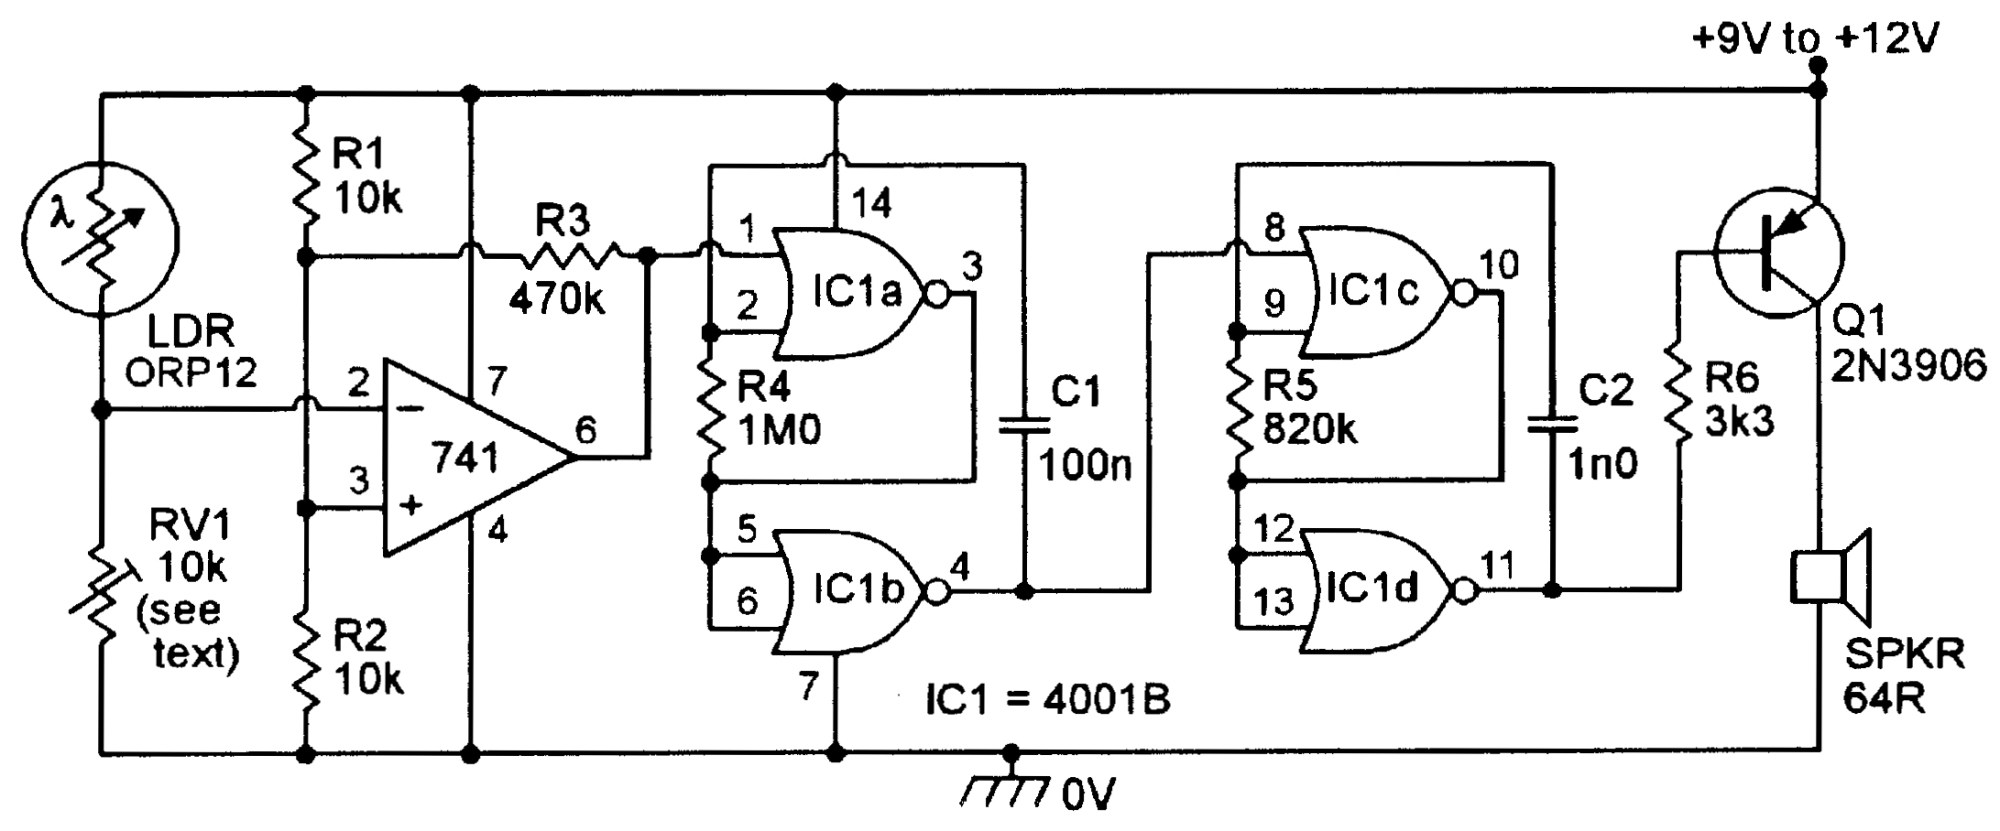 hight resolution of ldr project circuit diagram